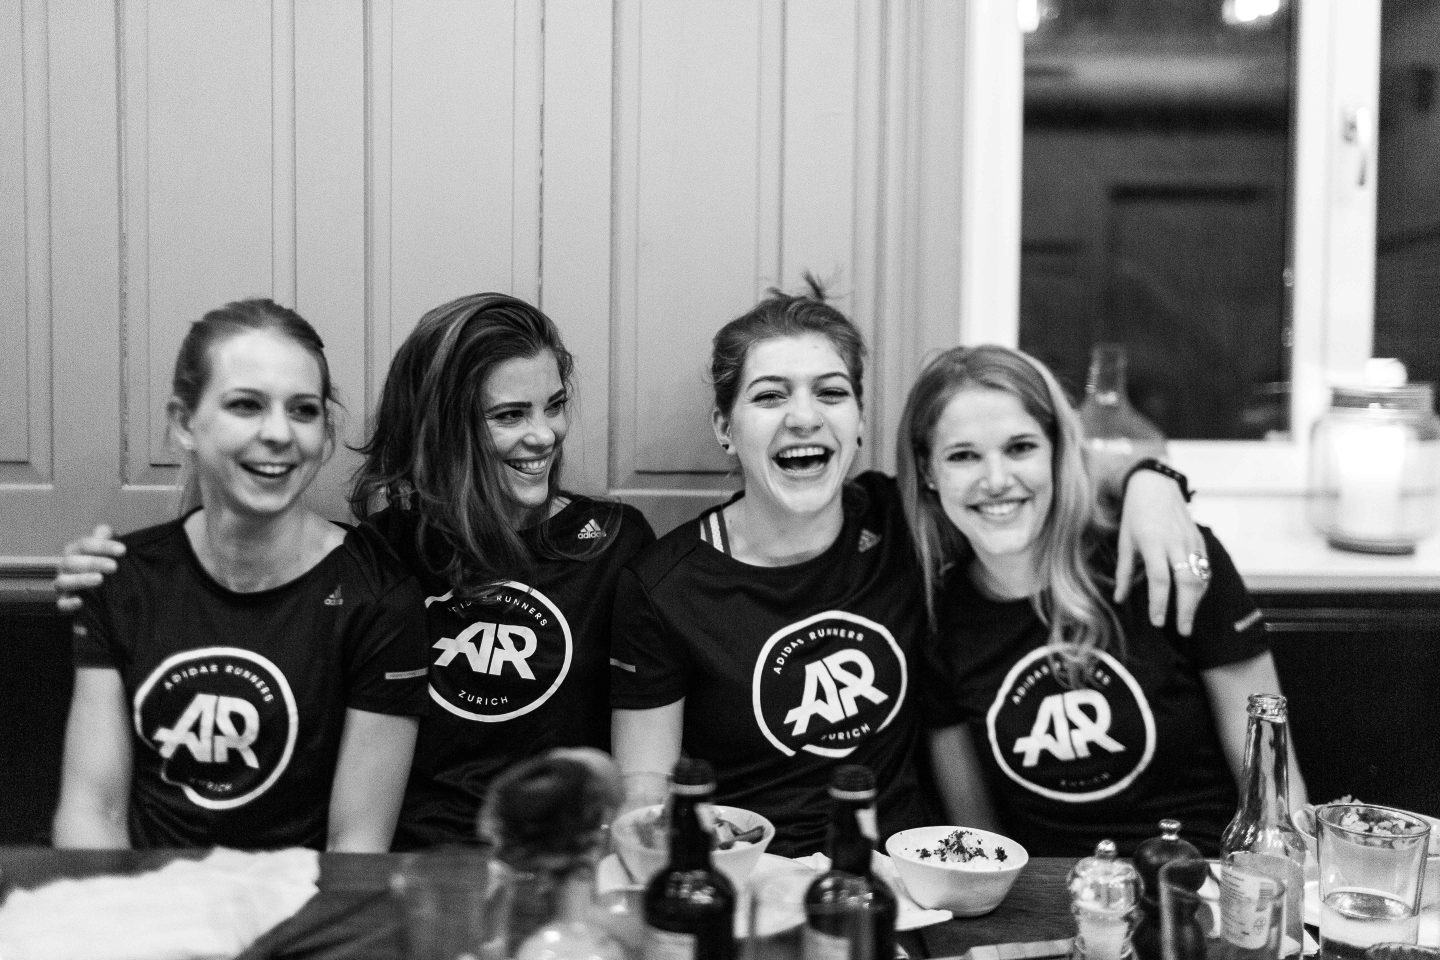 Black and white picture women in running tshirts laughing and sitting on a restaurant table, adidas, Running, adidas Runners, girls, laughing, friends, marathon, GamePlan A